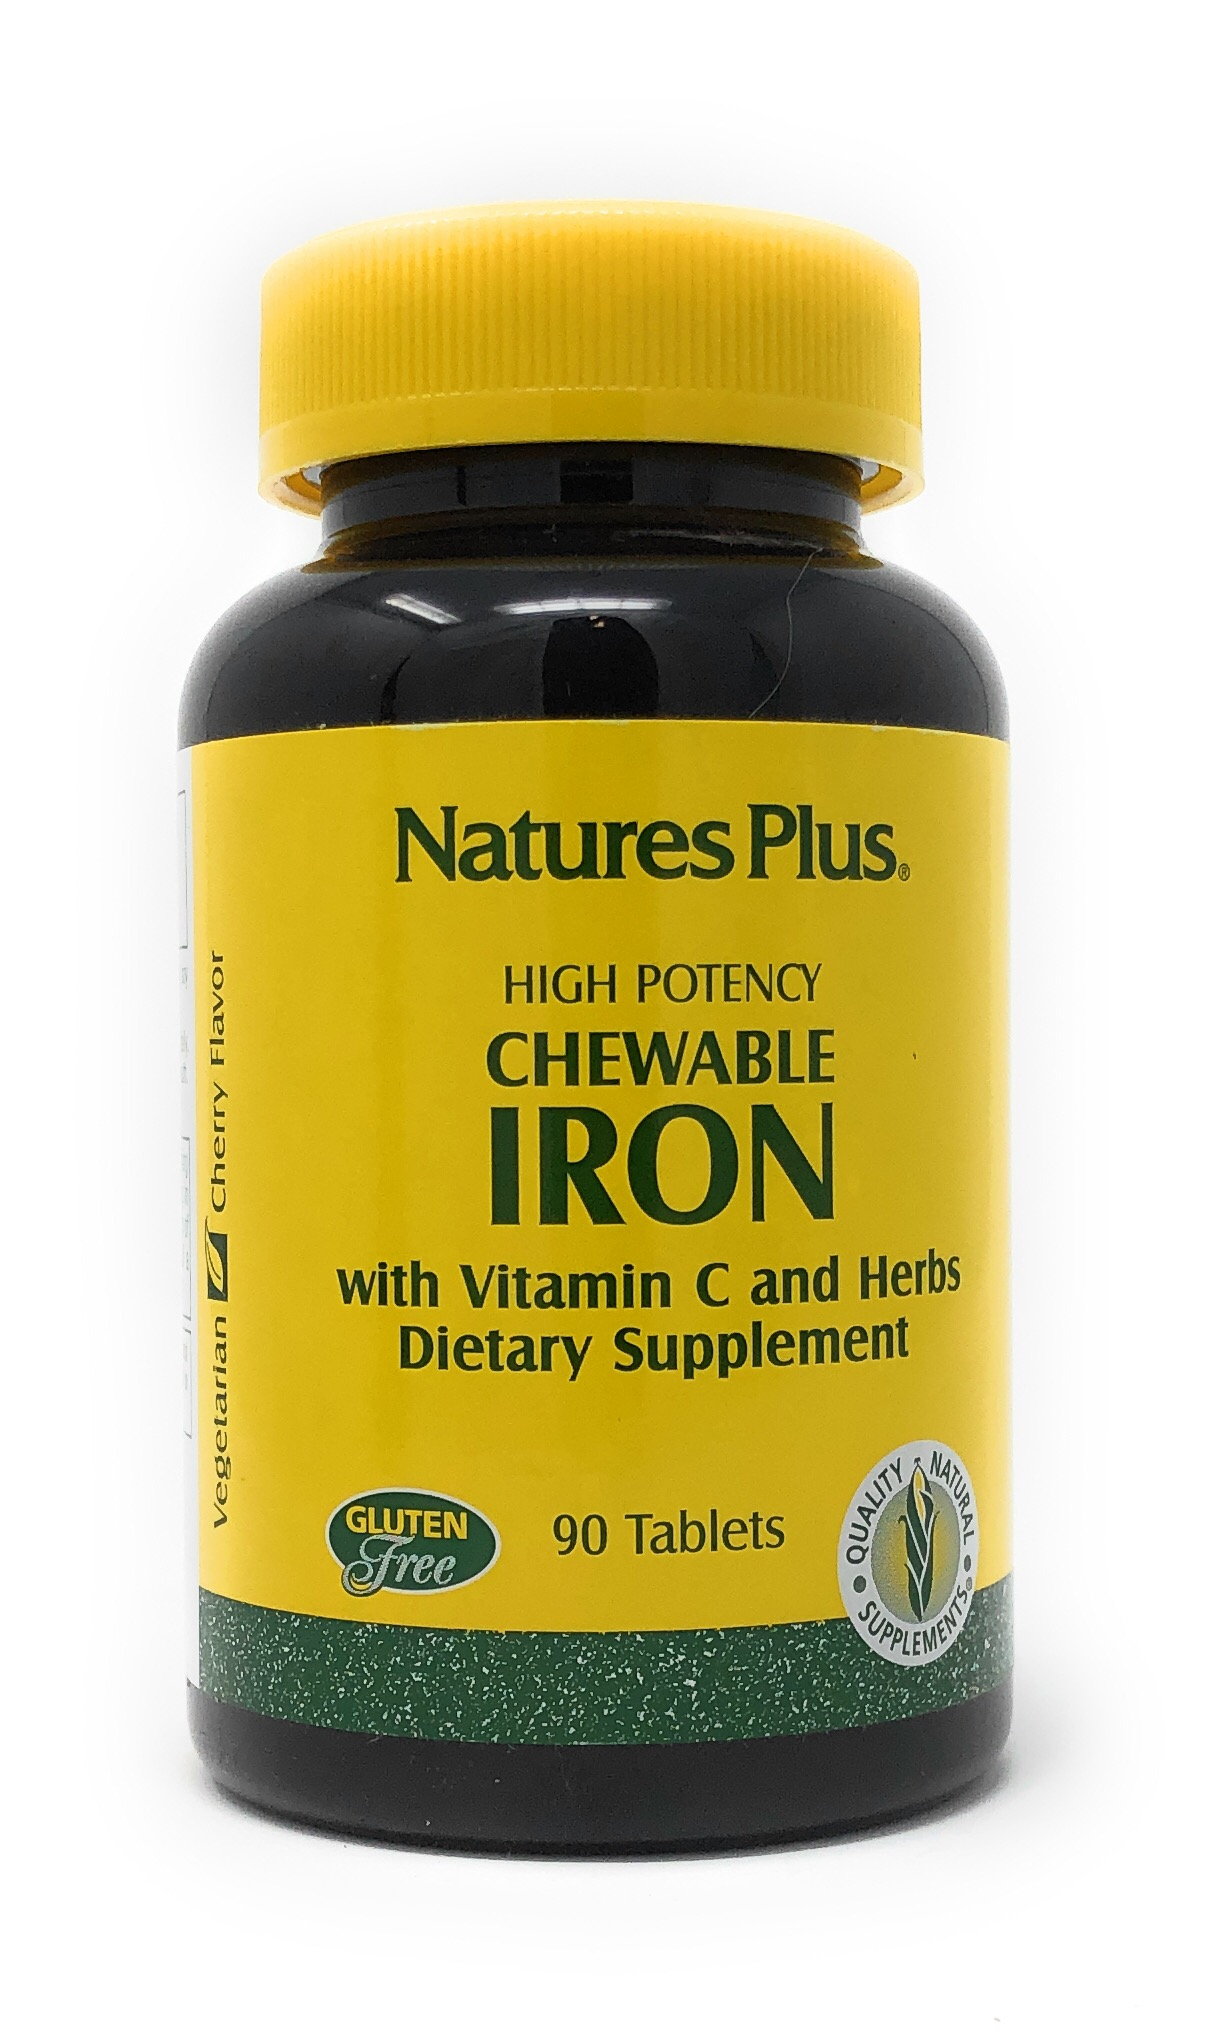 Natures Plus Chewable Iron w/Vitamin C & Herbs (27mg Eisen) 90 Lutsch-Tabletten (143,2g)